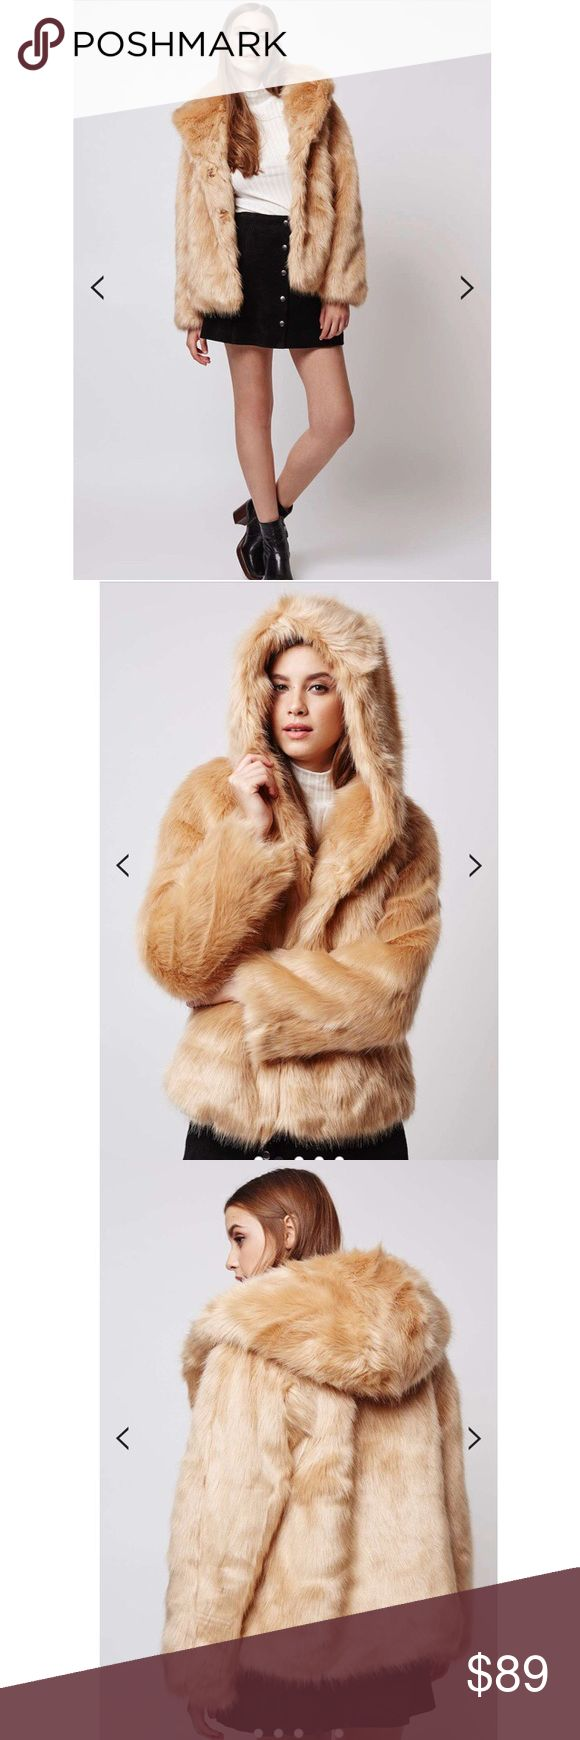 """Topshop Faux Fur Hooded Coat NWOT Retails for $170- Sold Out Camel Color Luxe faux fur comes reinvented for now in smooth caramel tones - perfect for the season ahead. This boxy fit coat is easy to shrug on, detailed with an oversized hood for added cosiness and comes with side pockets and a front popper fastening. Coat is fully lined for added warmth. 53% Modacrylic, 47% Acrylic. Dry clean only.  Model's height is 5' 9.5"""" Armpit down is about 13 inches Armpit to armpit is about 22 inches…"""